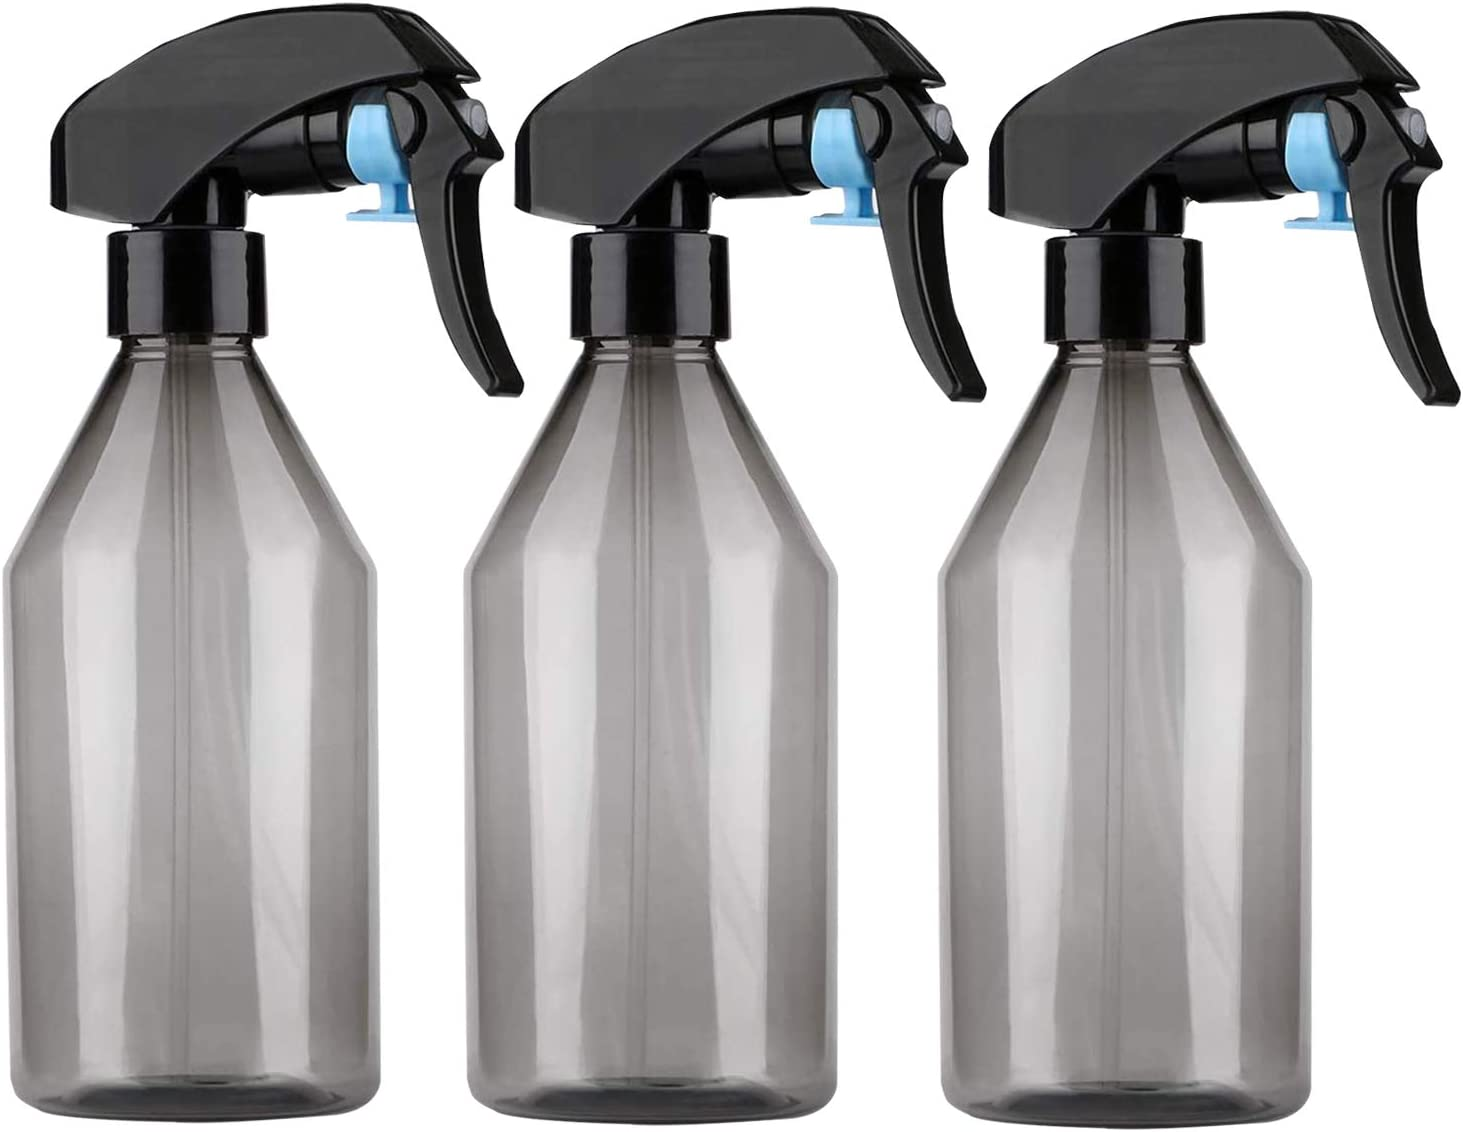 Fine mist spray bottle, plant mister spray bottle or empty small water spray bottle suits cleaning solutions. water, indoor gardening, spray water bottle with mister sprayer nozzle 10oz/300ml (3 sets)